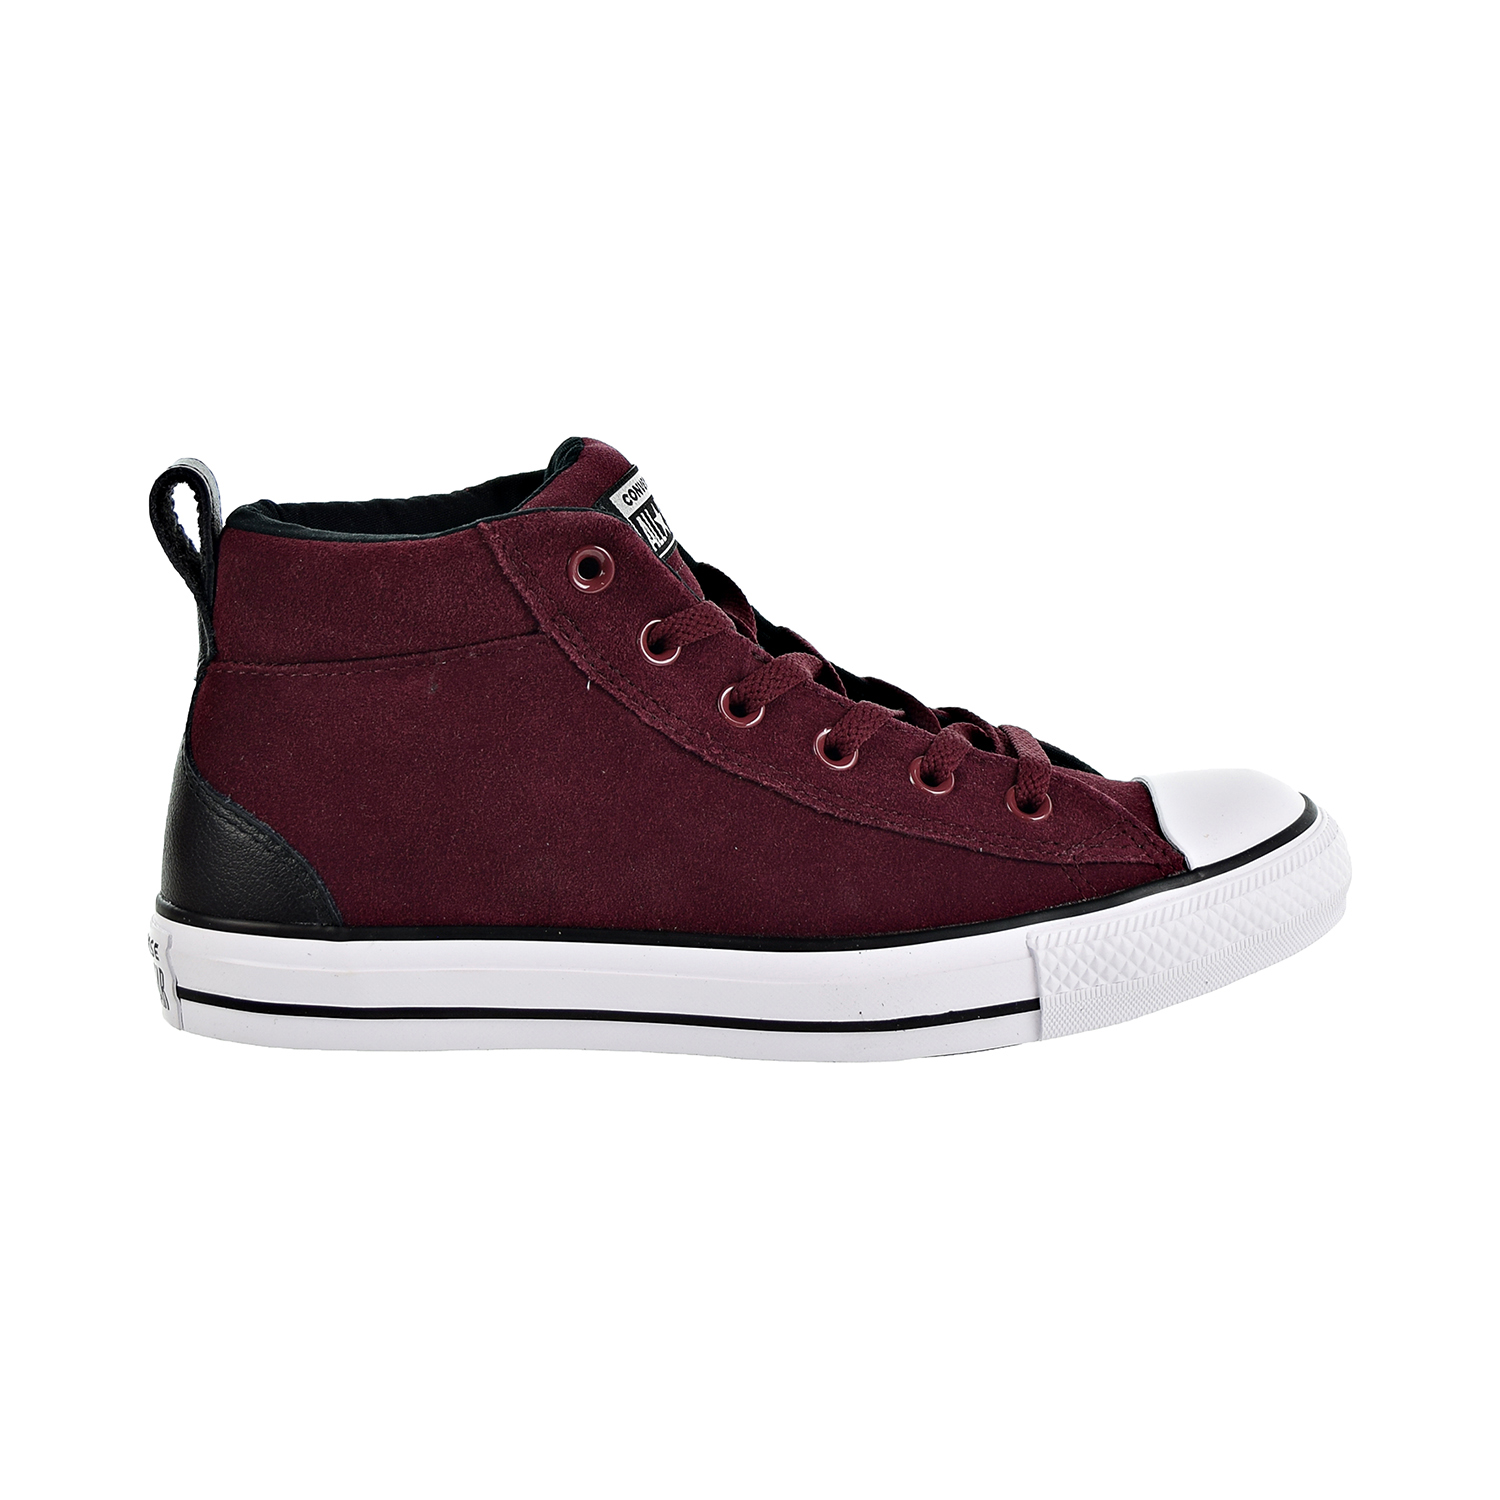 ba7a10e6a59caa Details about Converse Chuck Taylor All Star Street Mid Unisex Shoes  Burgundy White 161467c